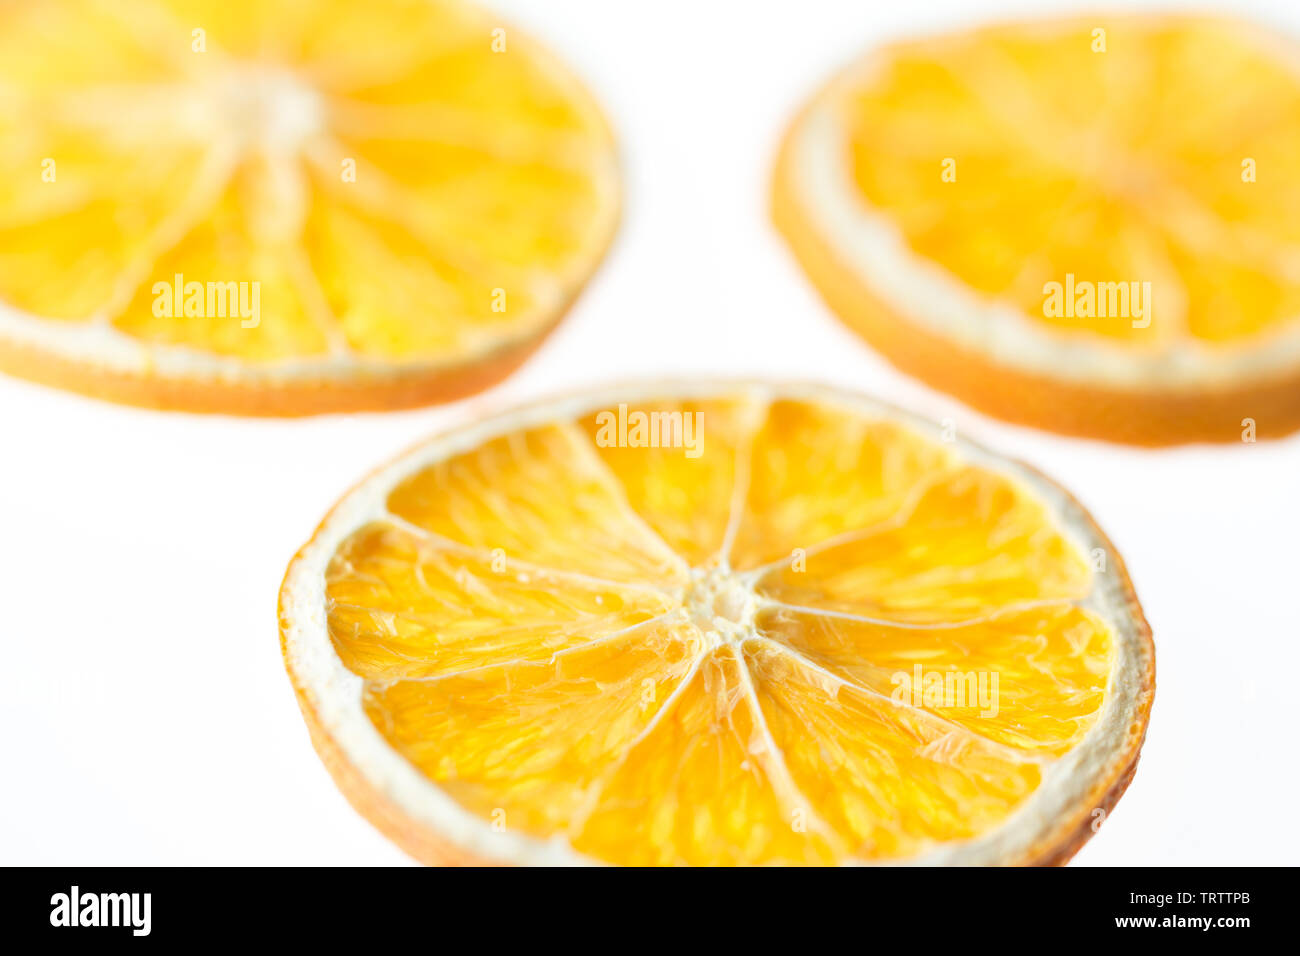 Three dried orange slices isolated on white background - selective focus - Stock Image